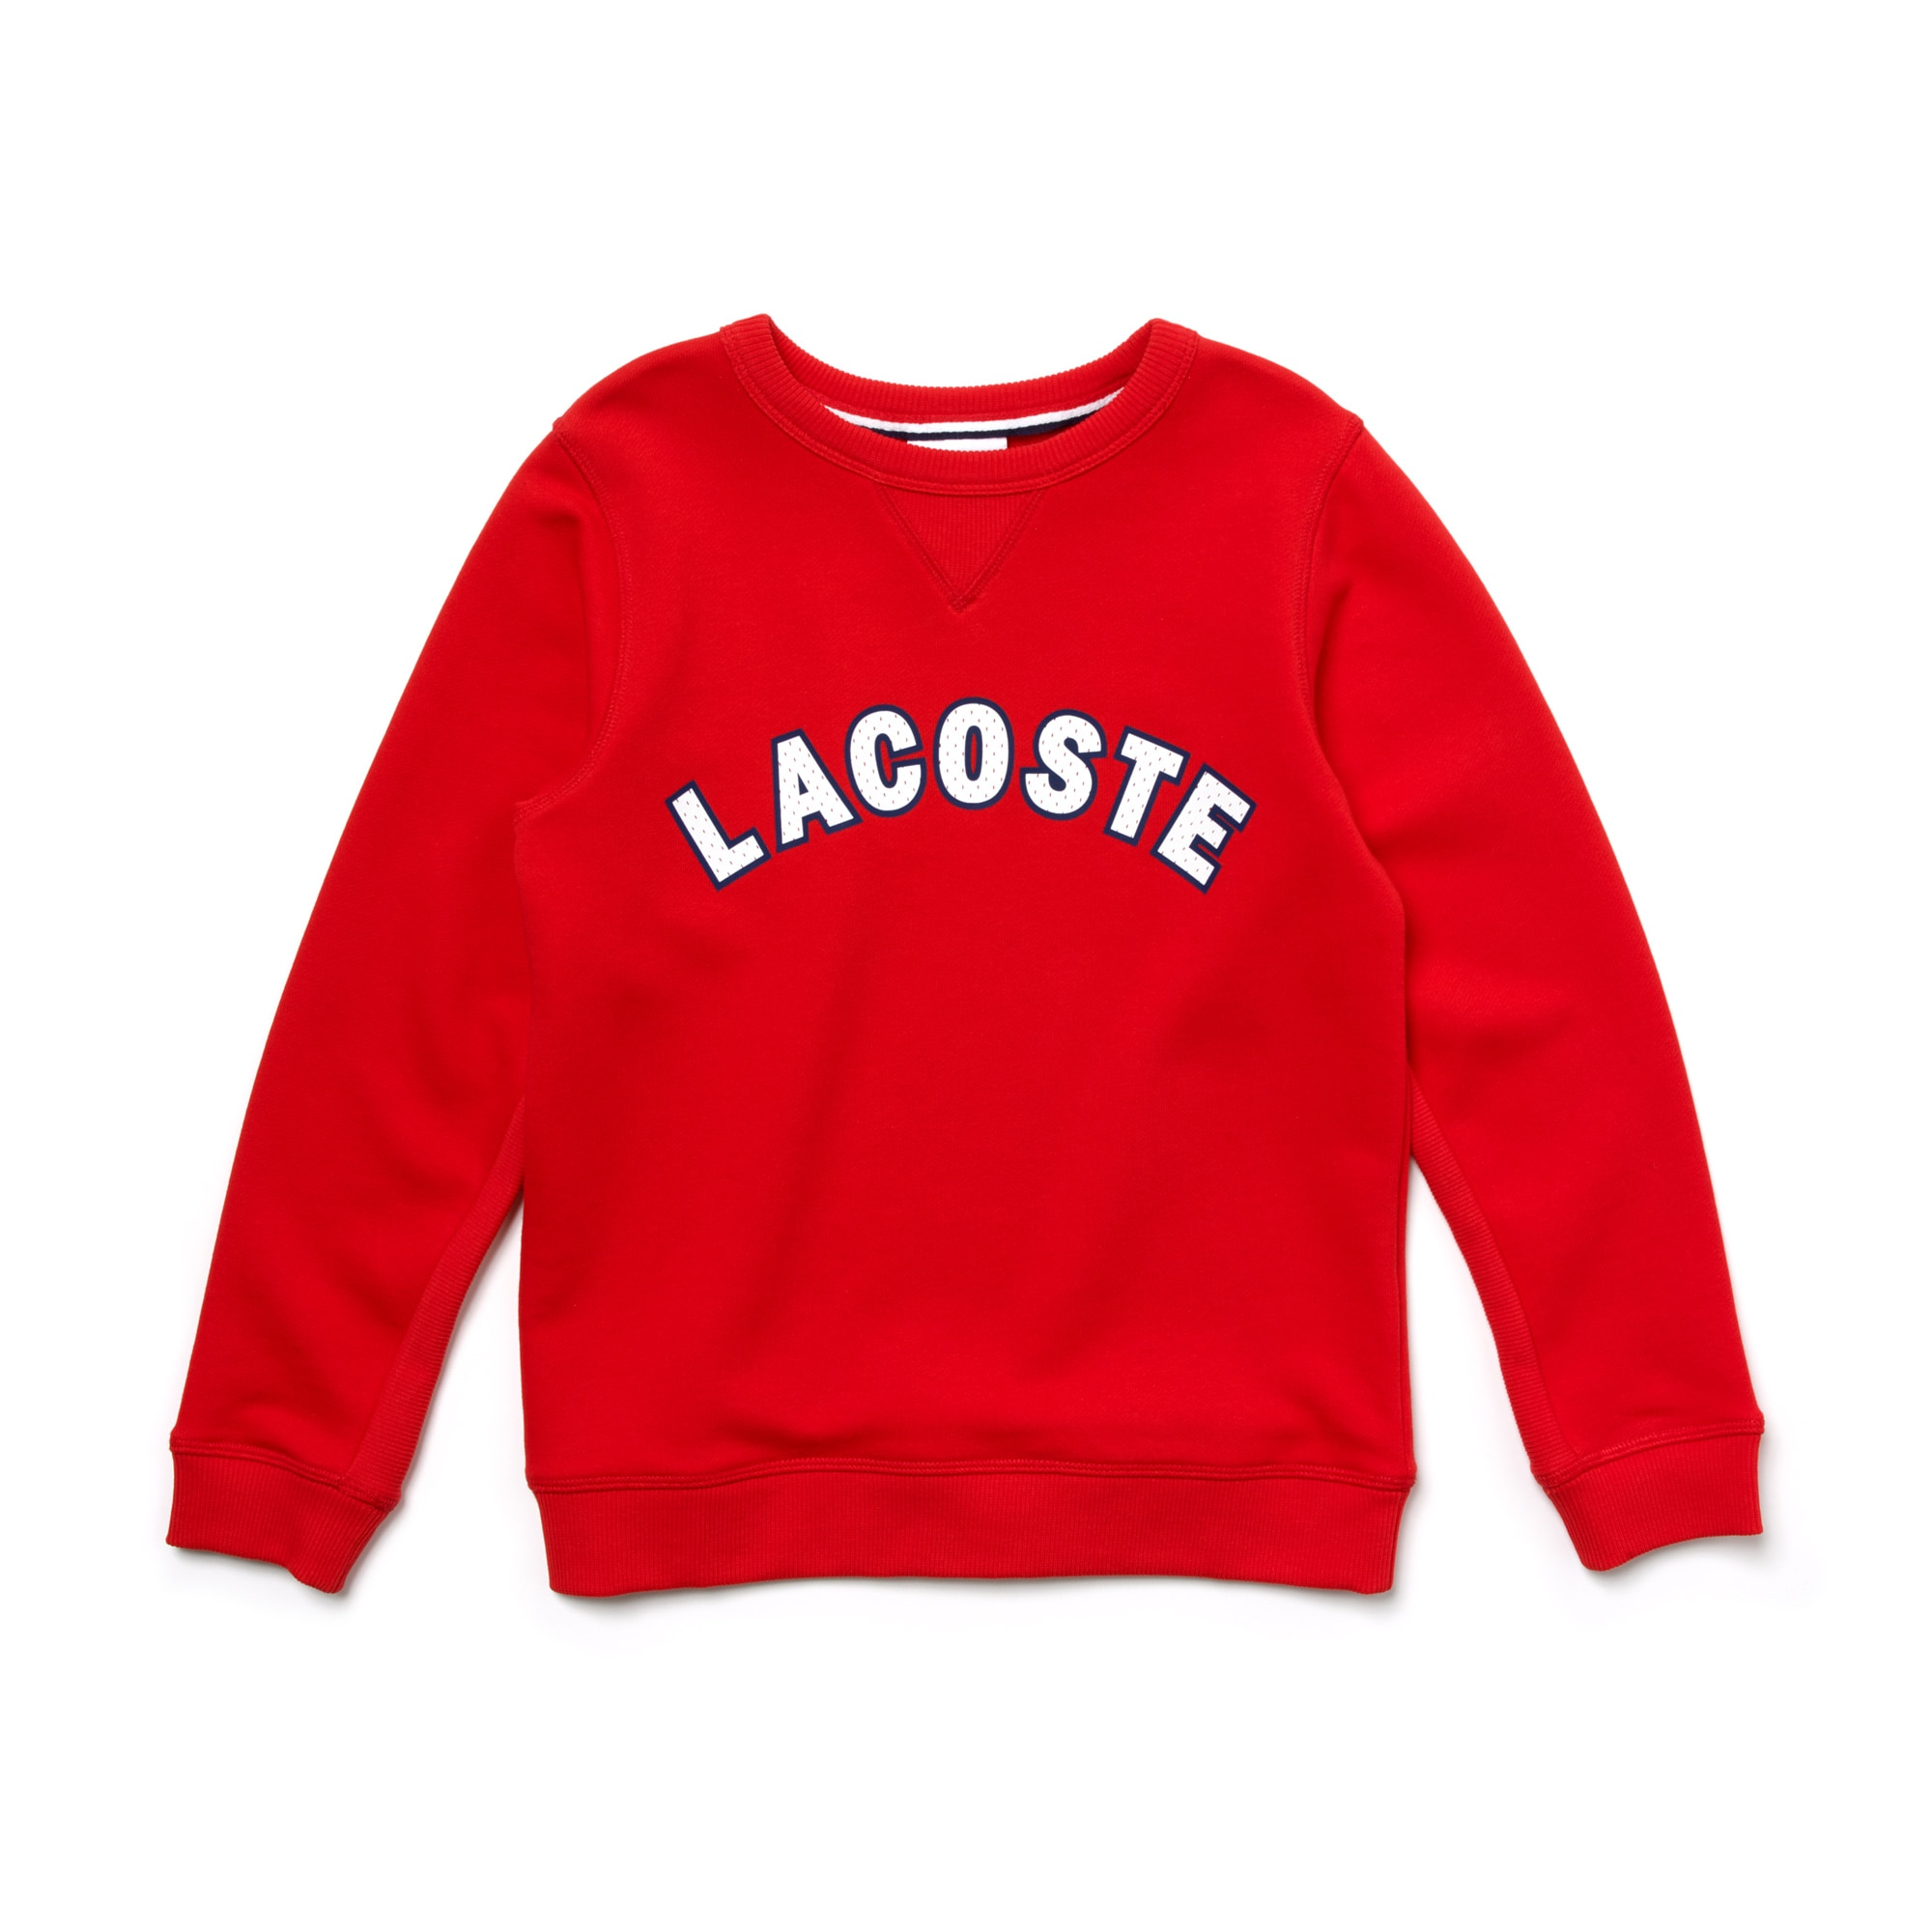 Kid's Crew Neck Fleece Sweatshirt